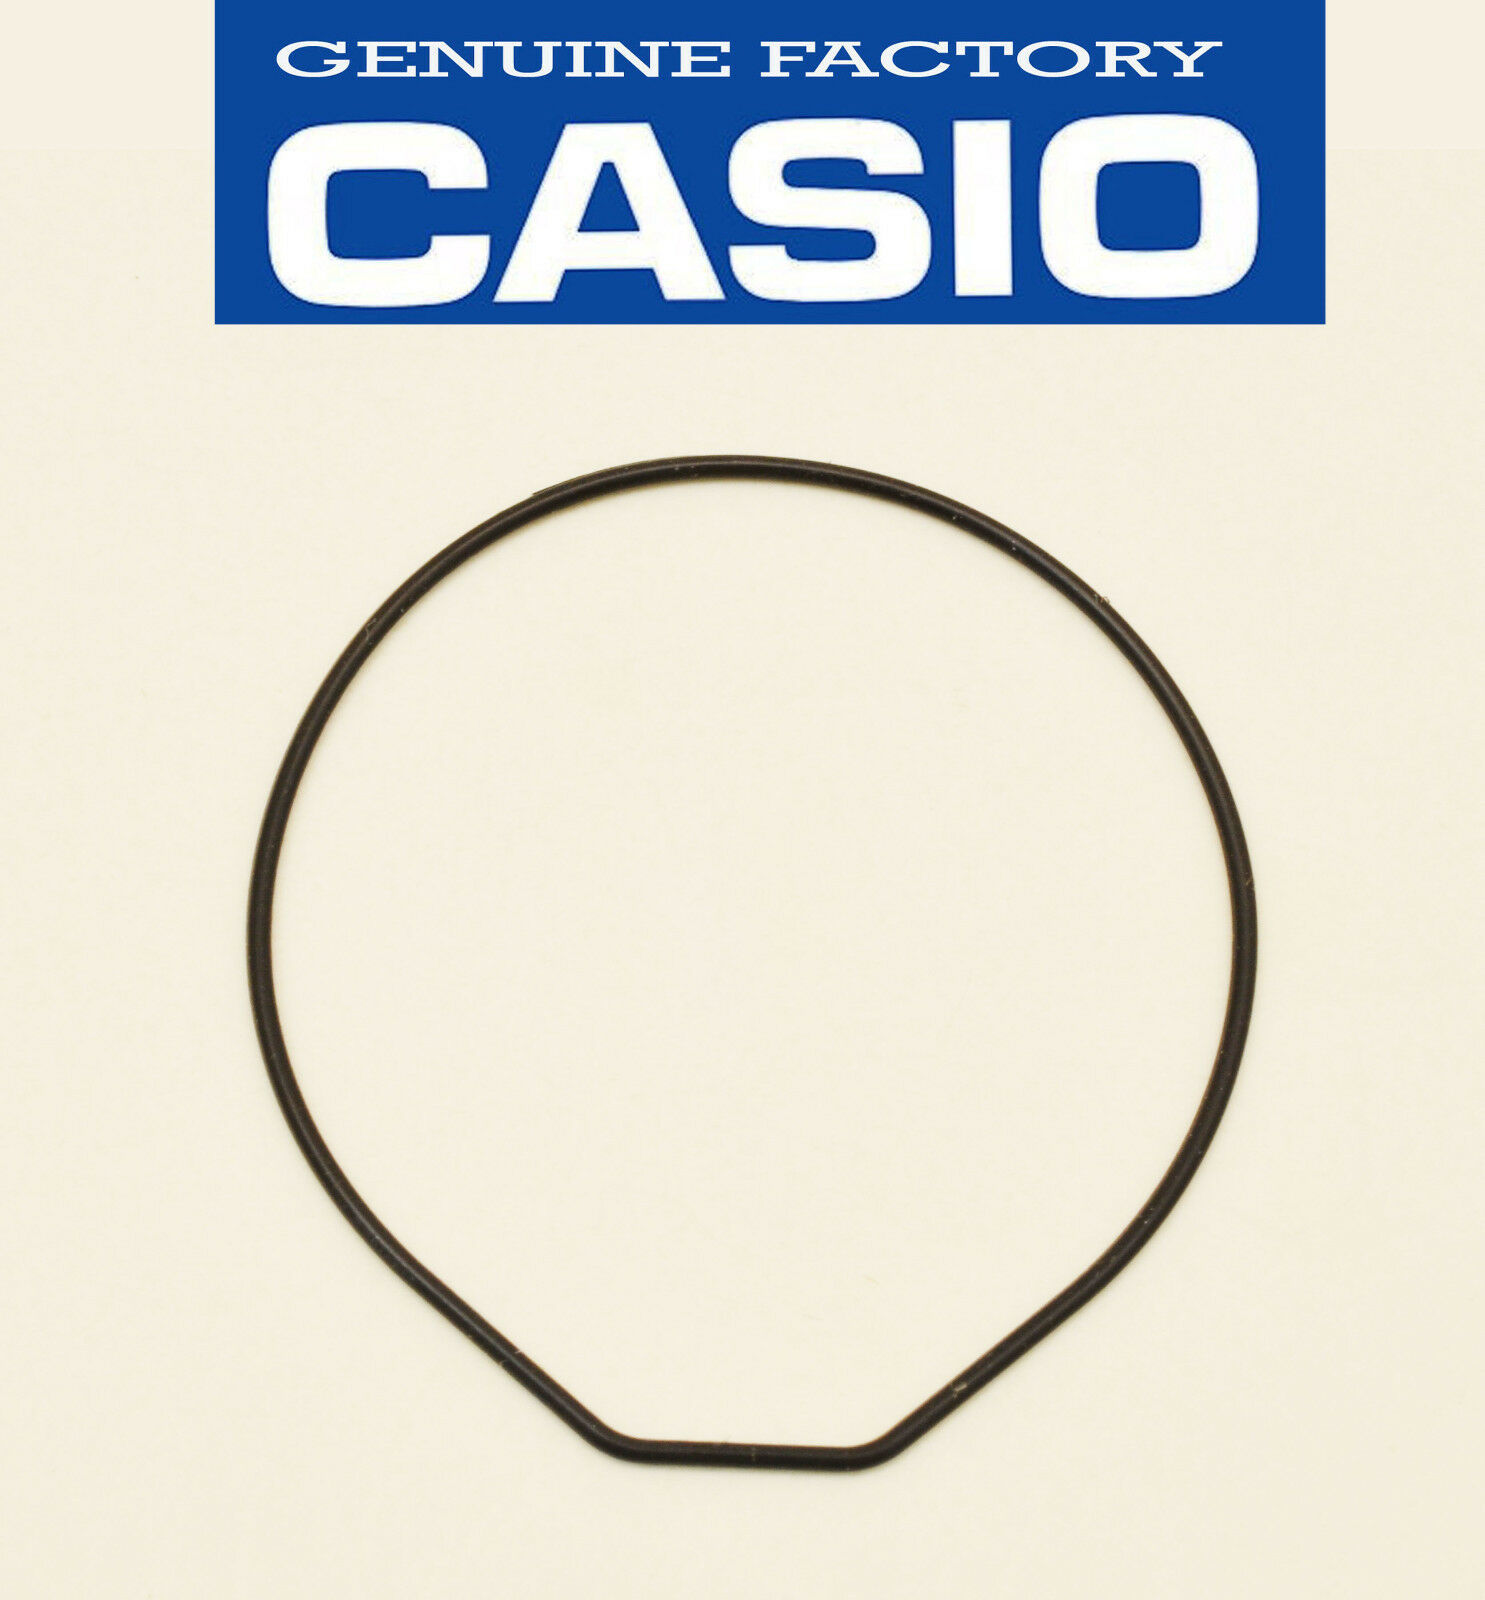 Primary image for Casio G-SHOCK WATCH PART GASKET CASE BACK O-RING  G-9000 G-800 G-9025A GW-800